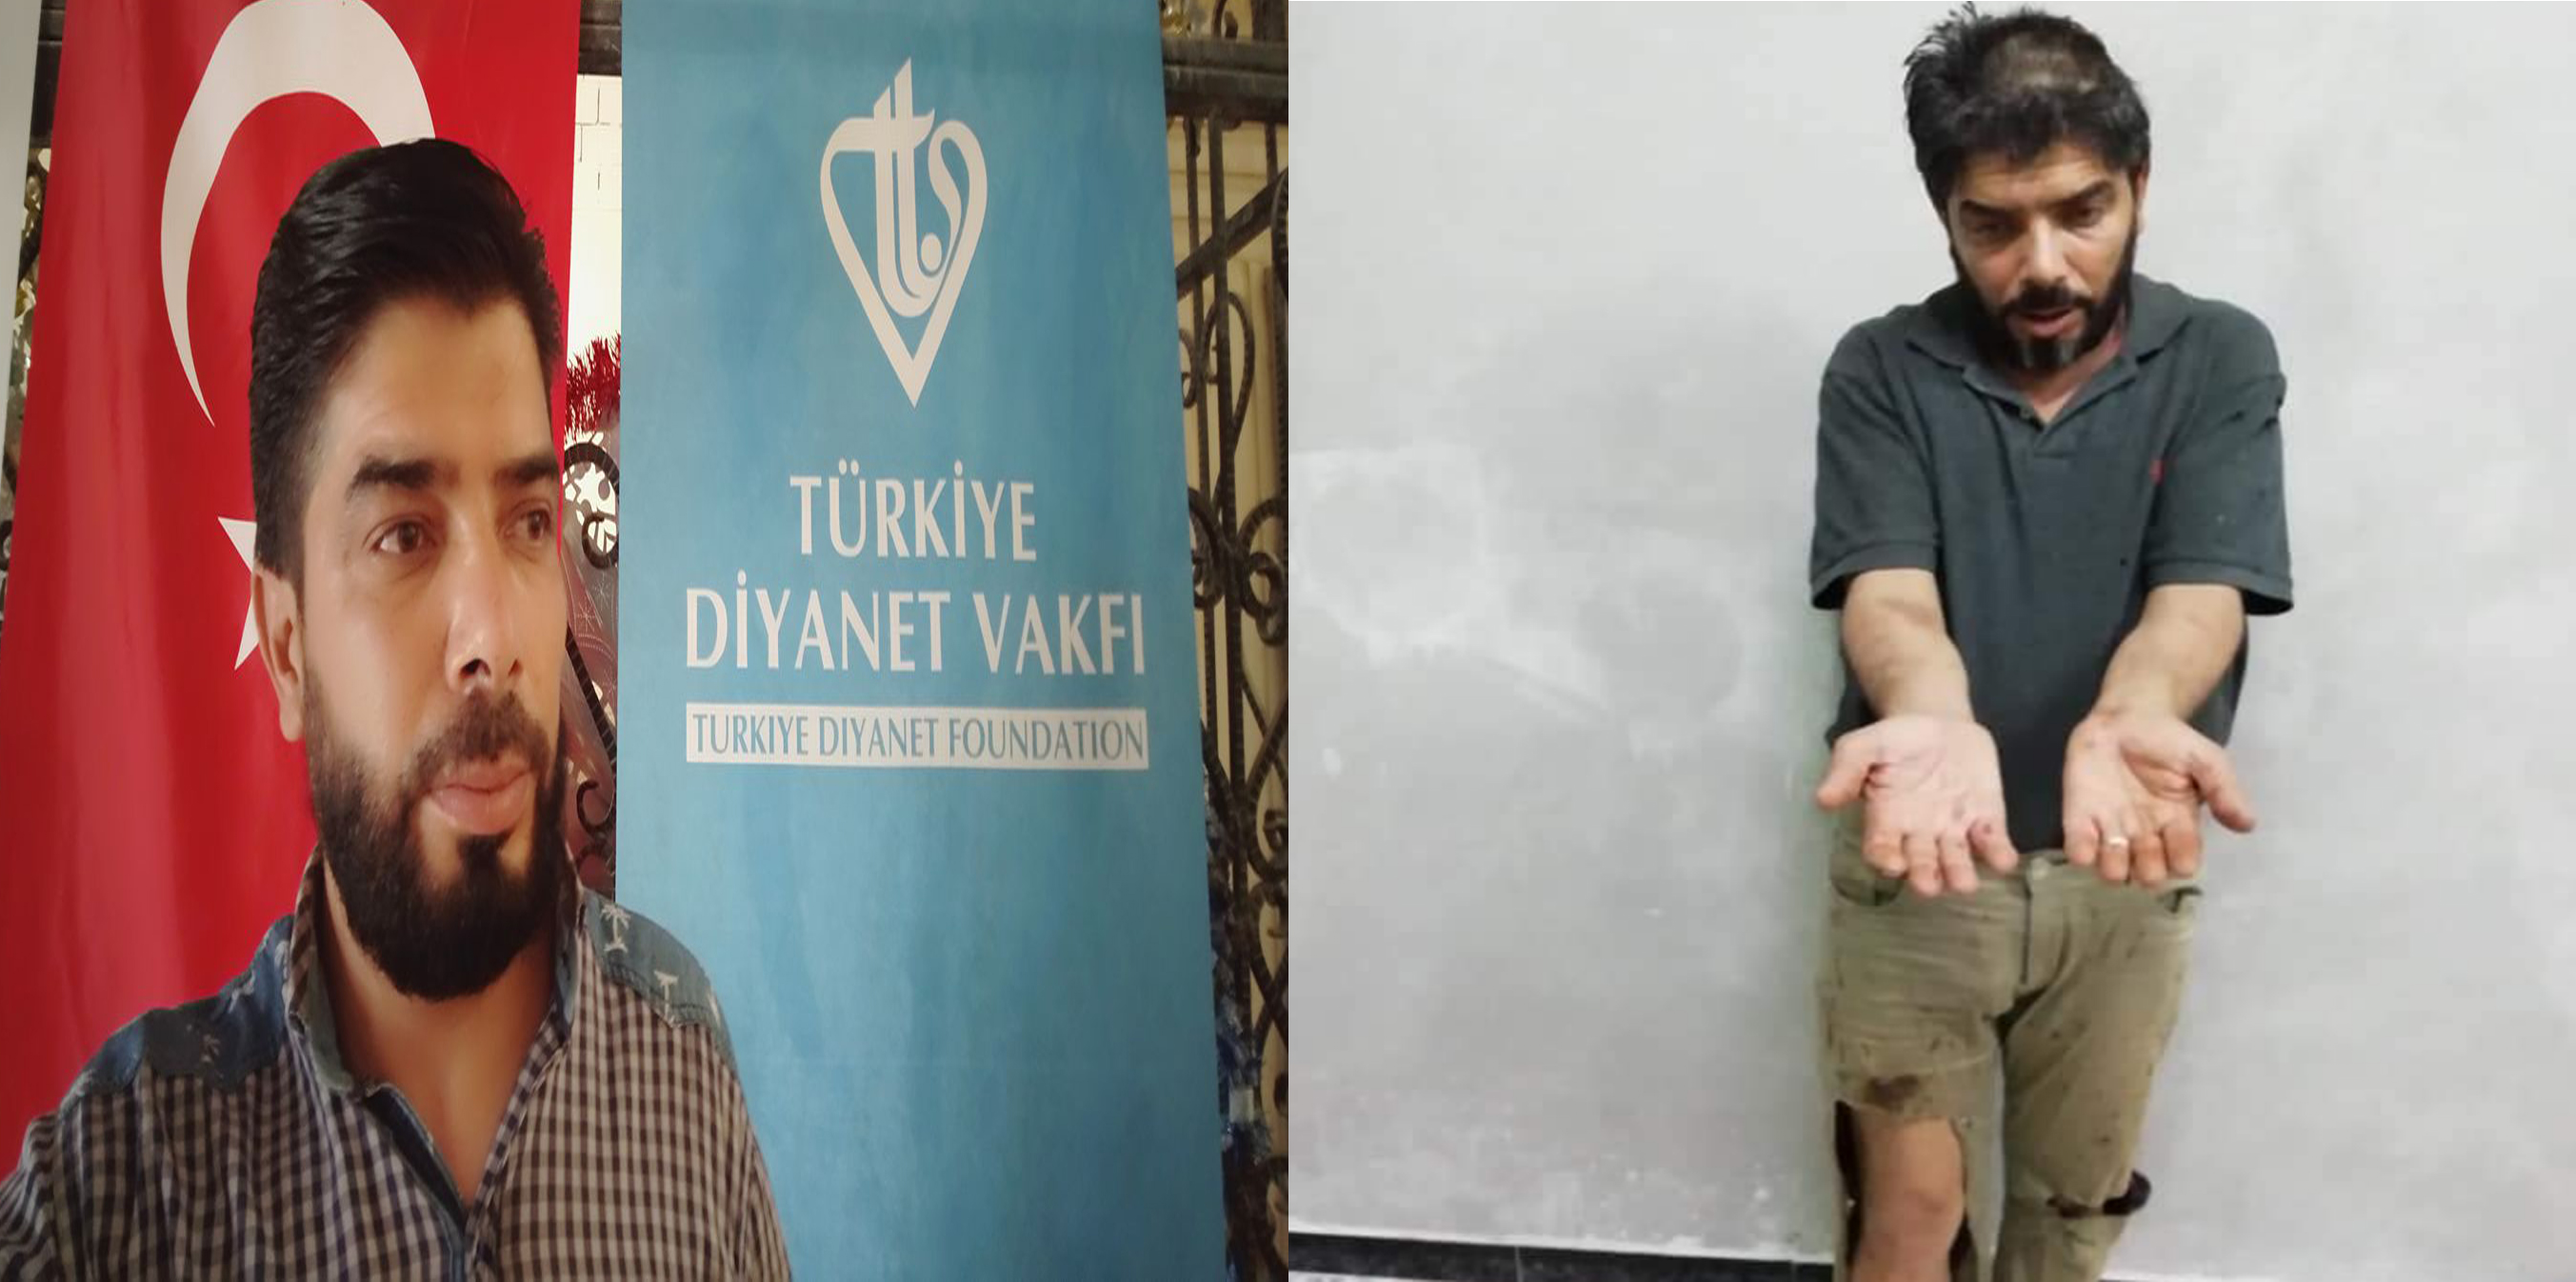 Turkish gendarmerie tortures 3 media activists supported by Turkey!